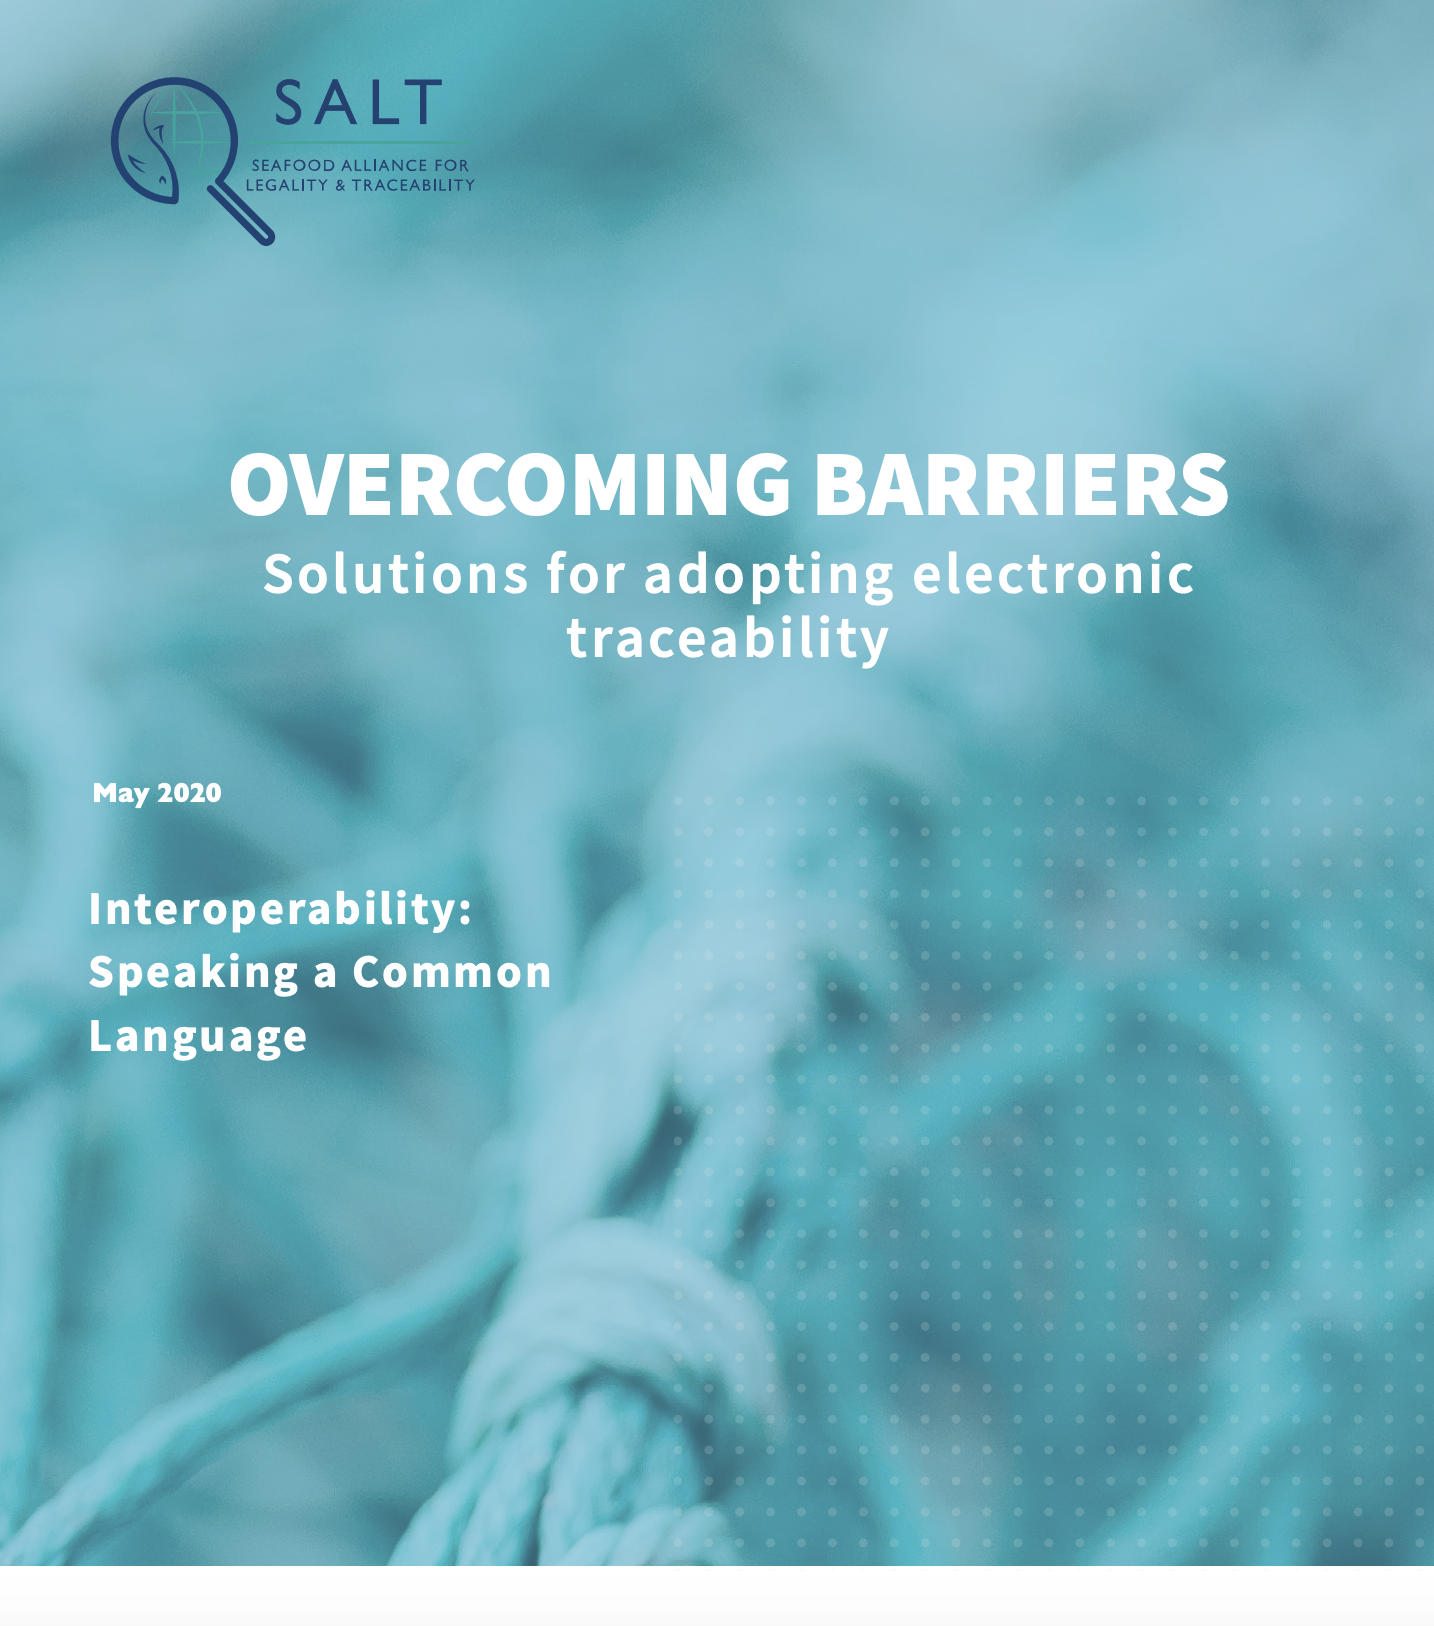 Overcoming Barriers: Speaking a Common Language Through Interoperability